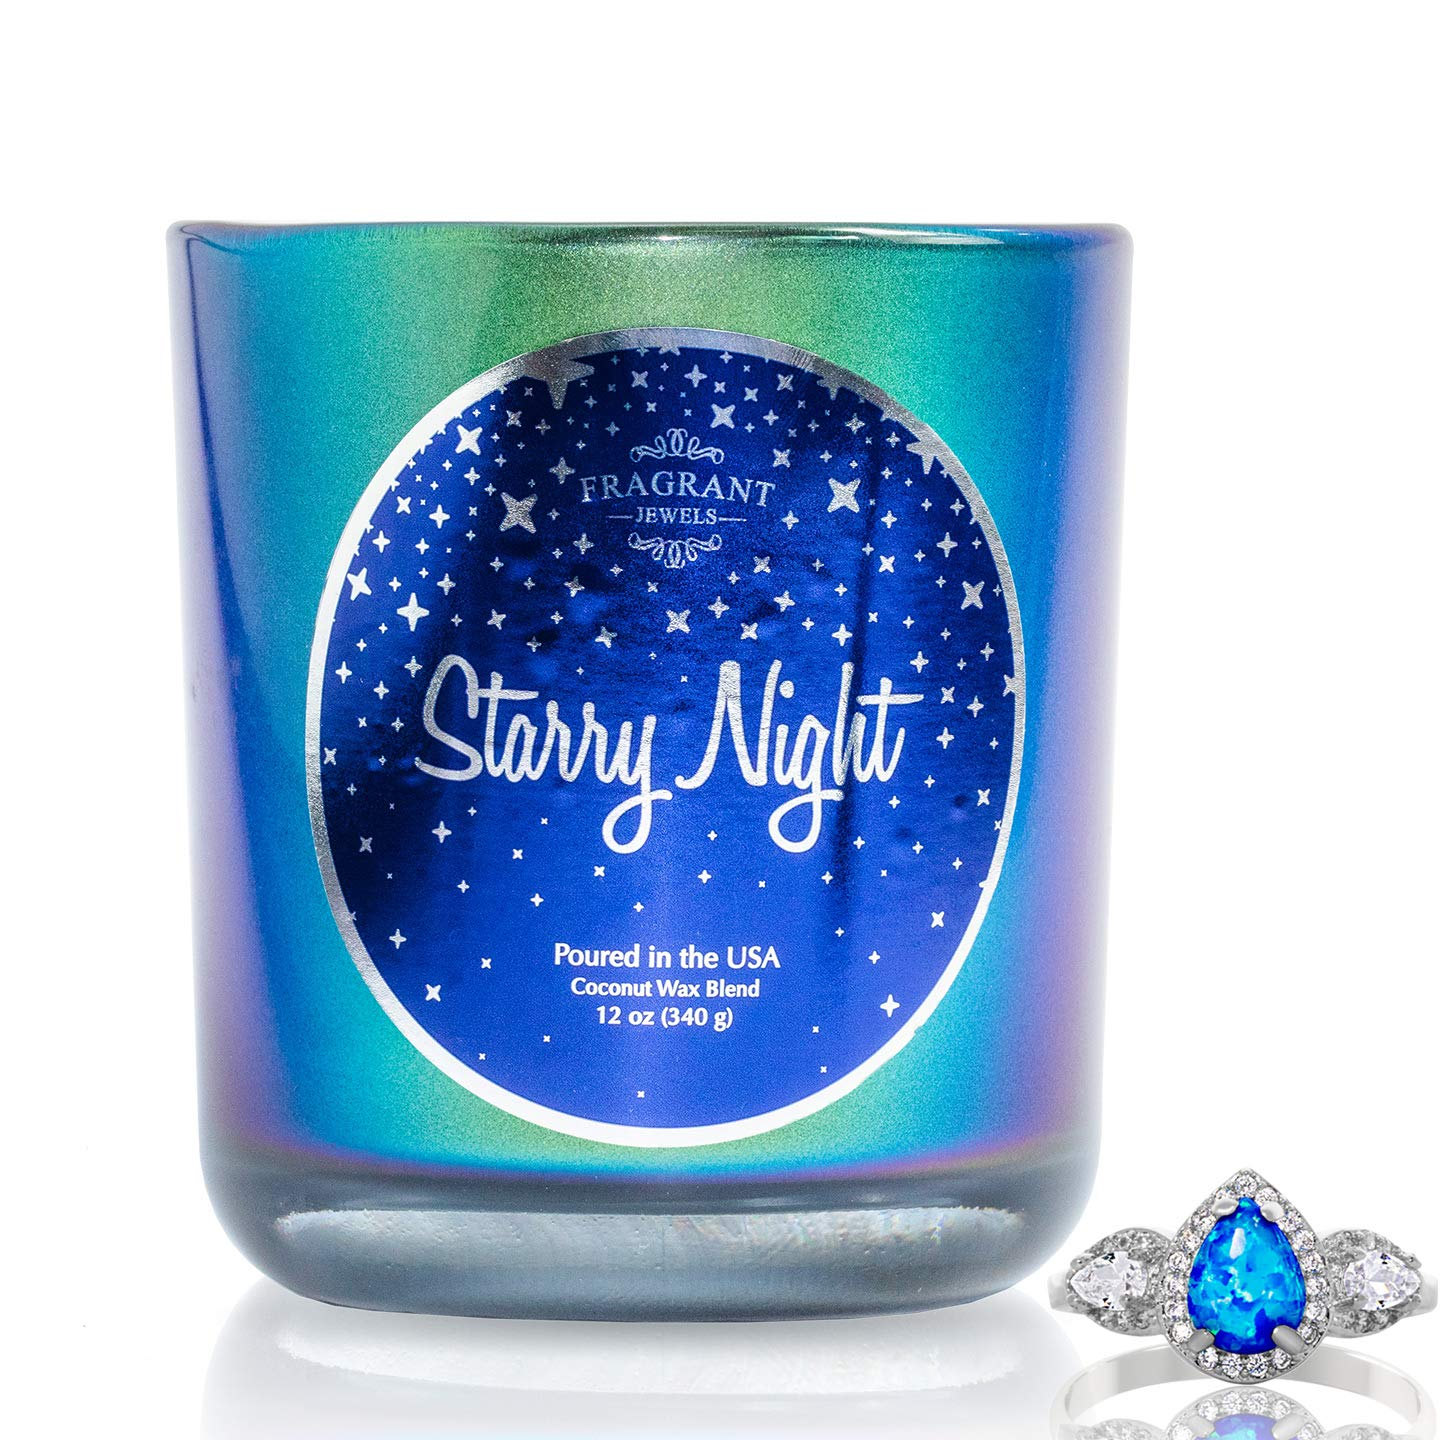 Fragrant Jewels Starry Night Jewel Candle with Collectible Rings (Size 5-10) by Fragrant Jewels (Image #1)